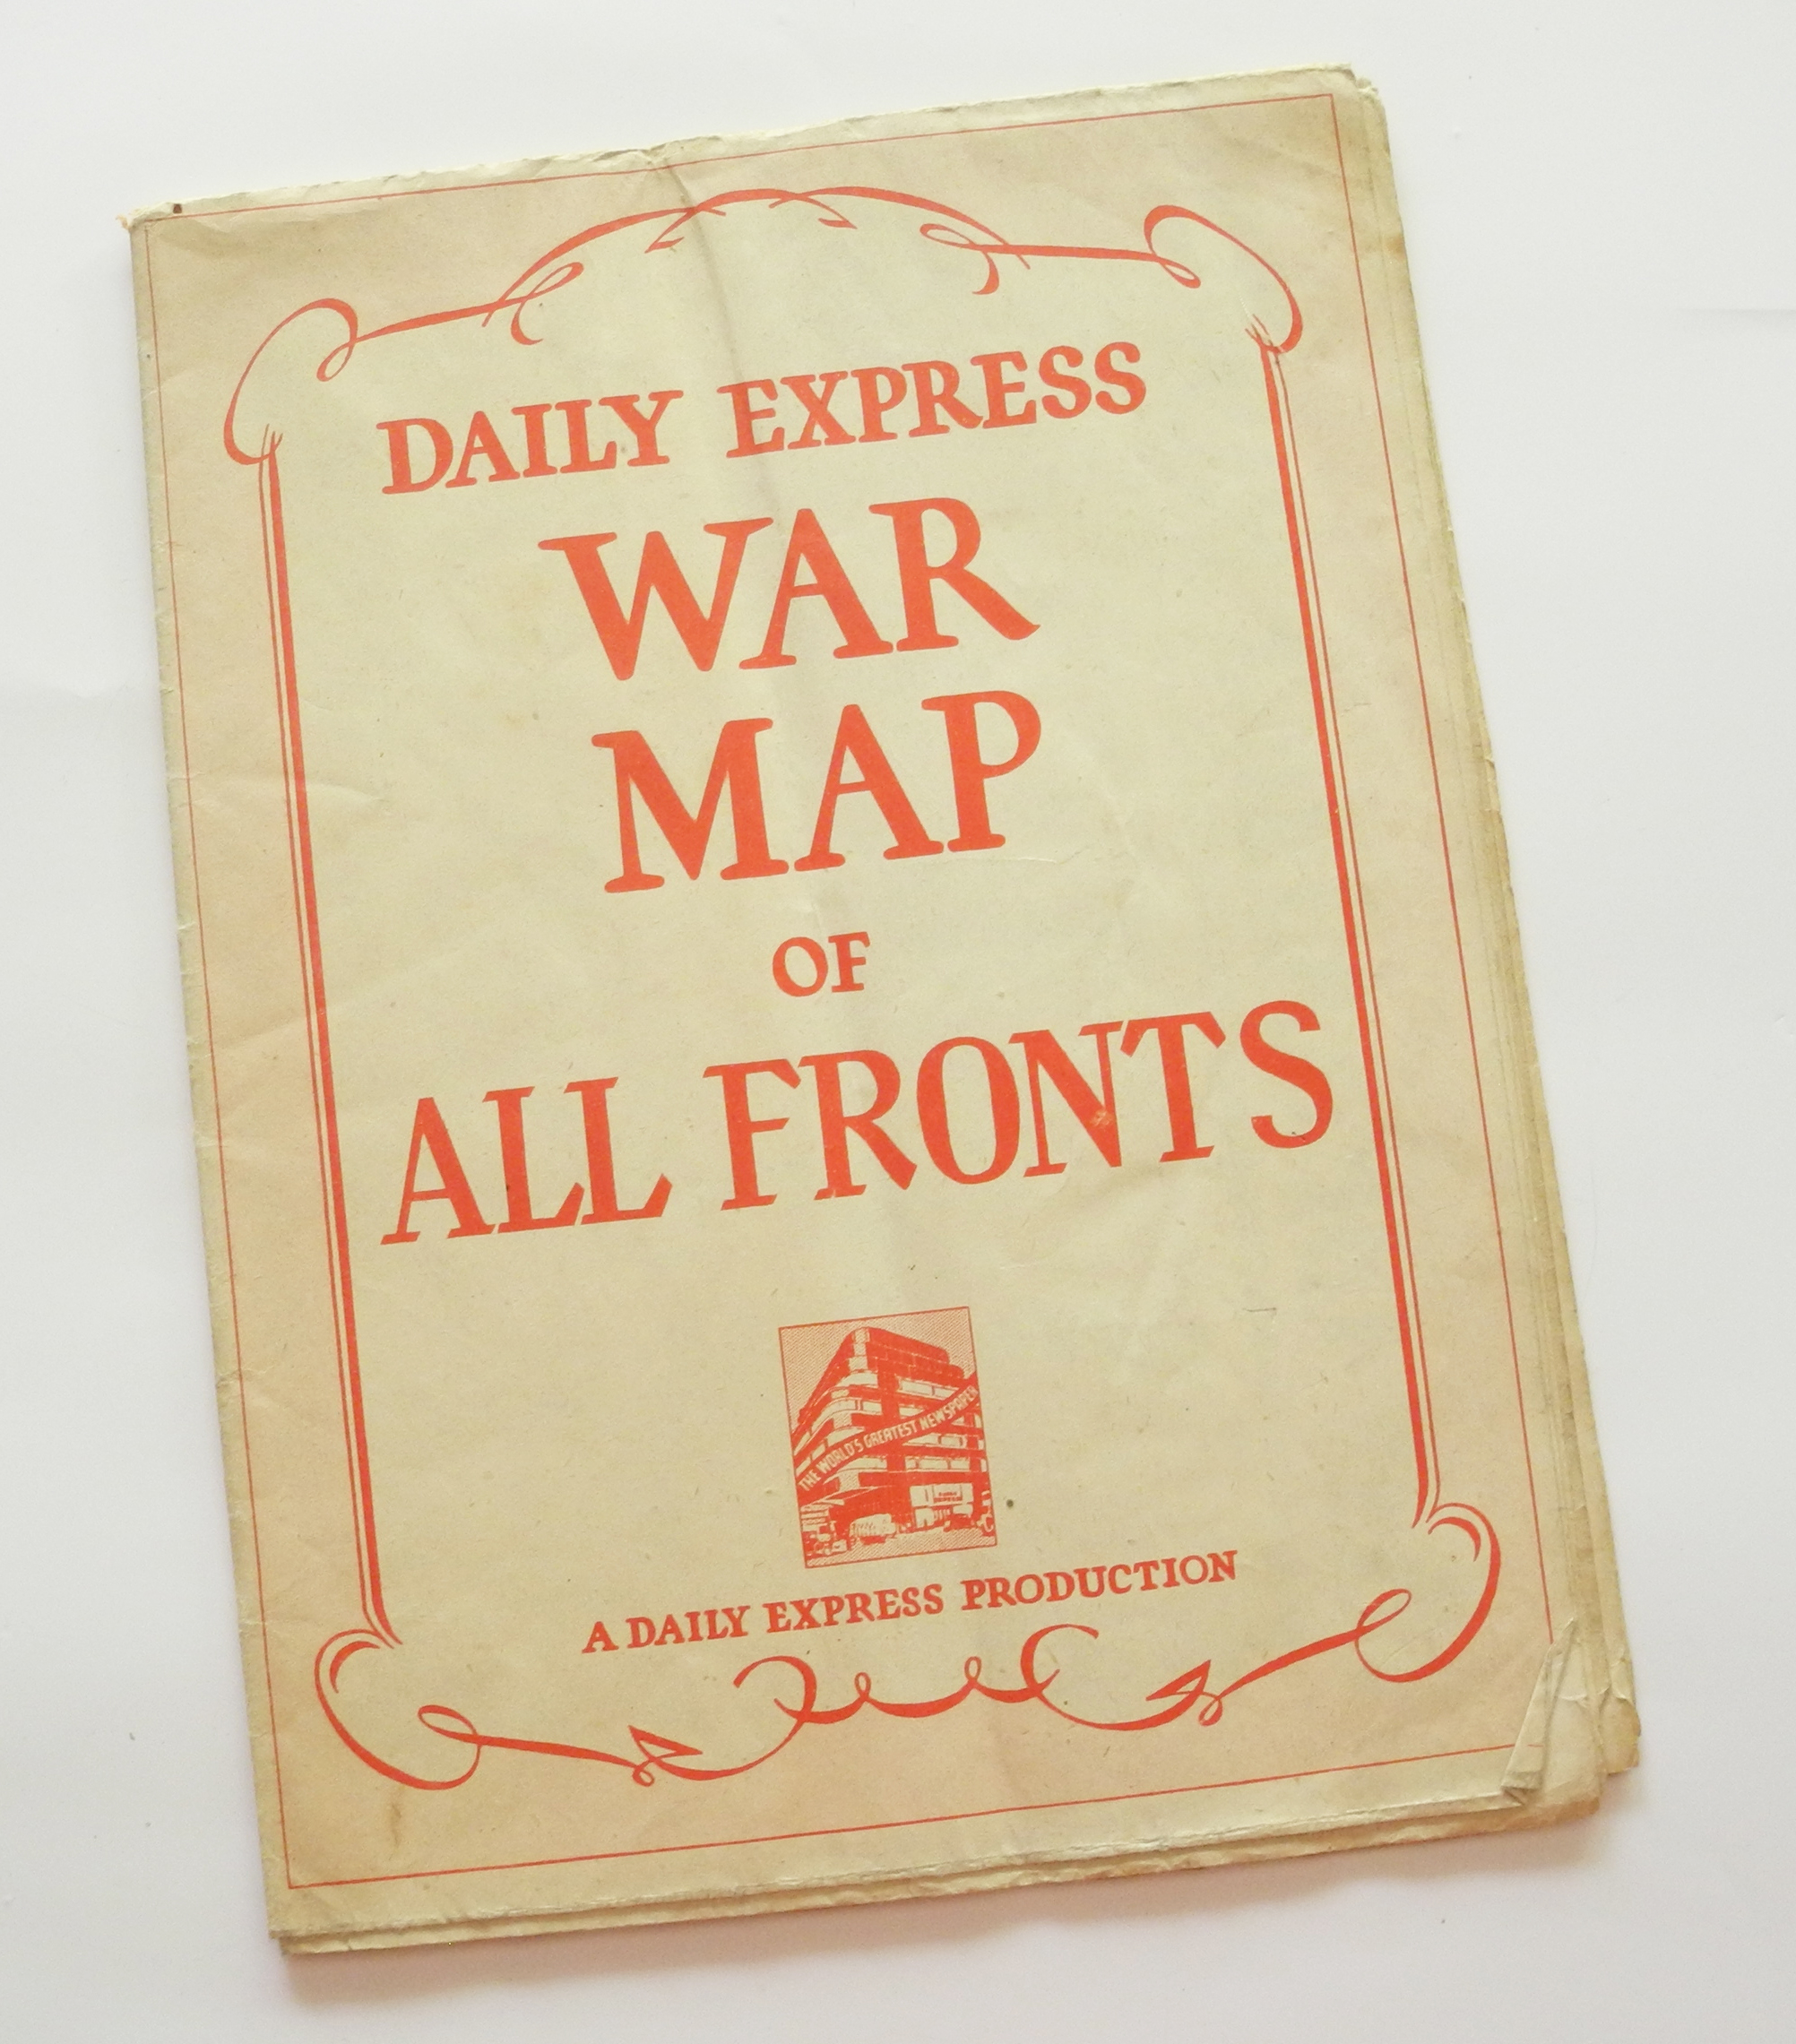 Daily Express War Map